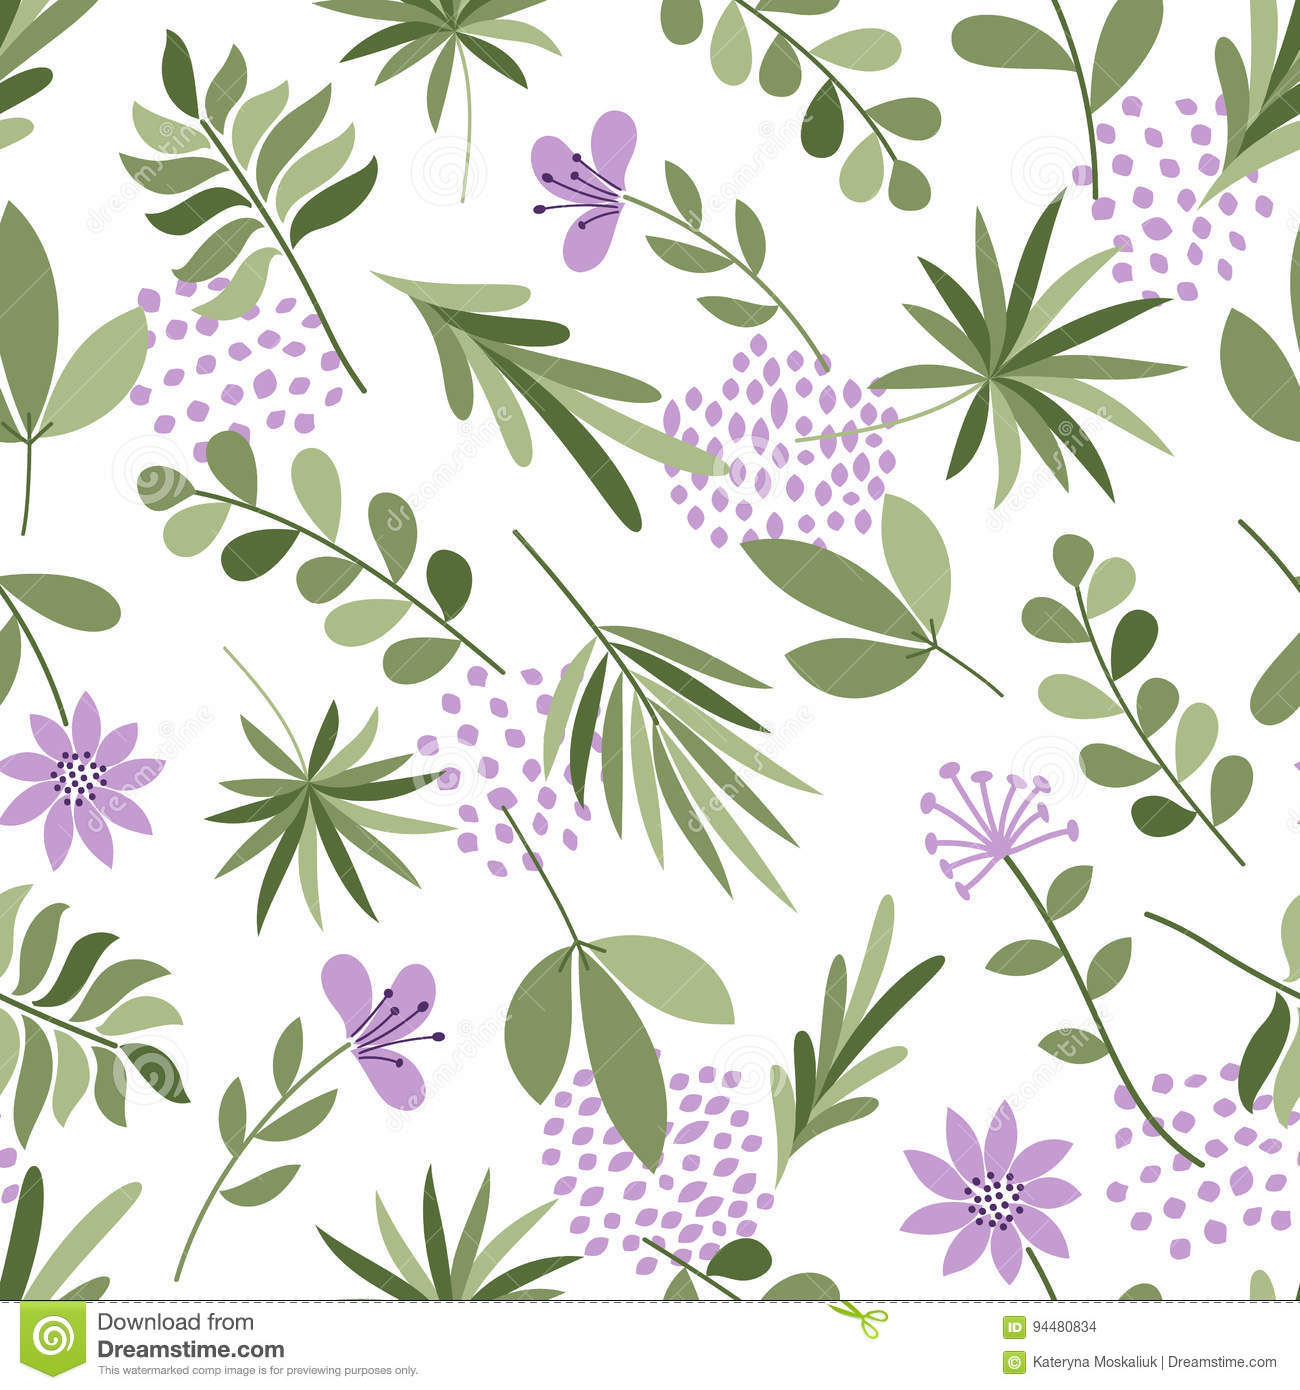 simple plants pattern seamless cute background with flowers and